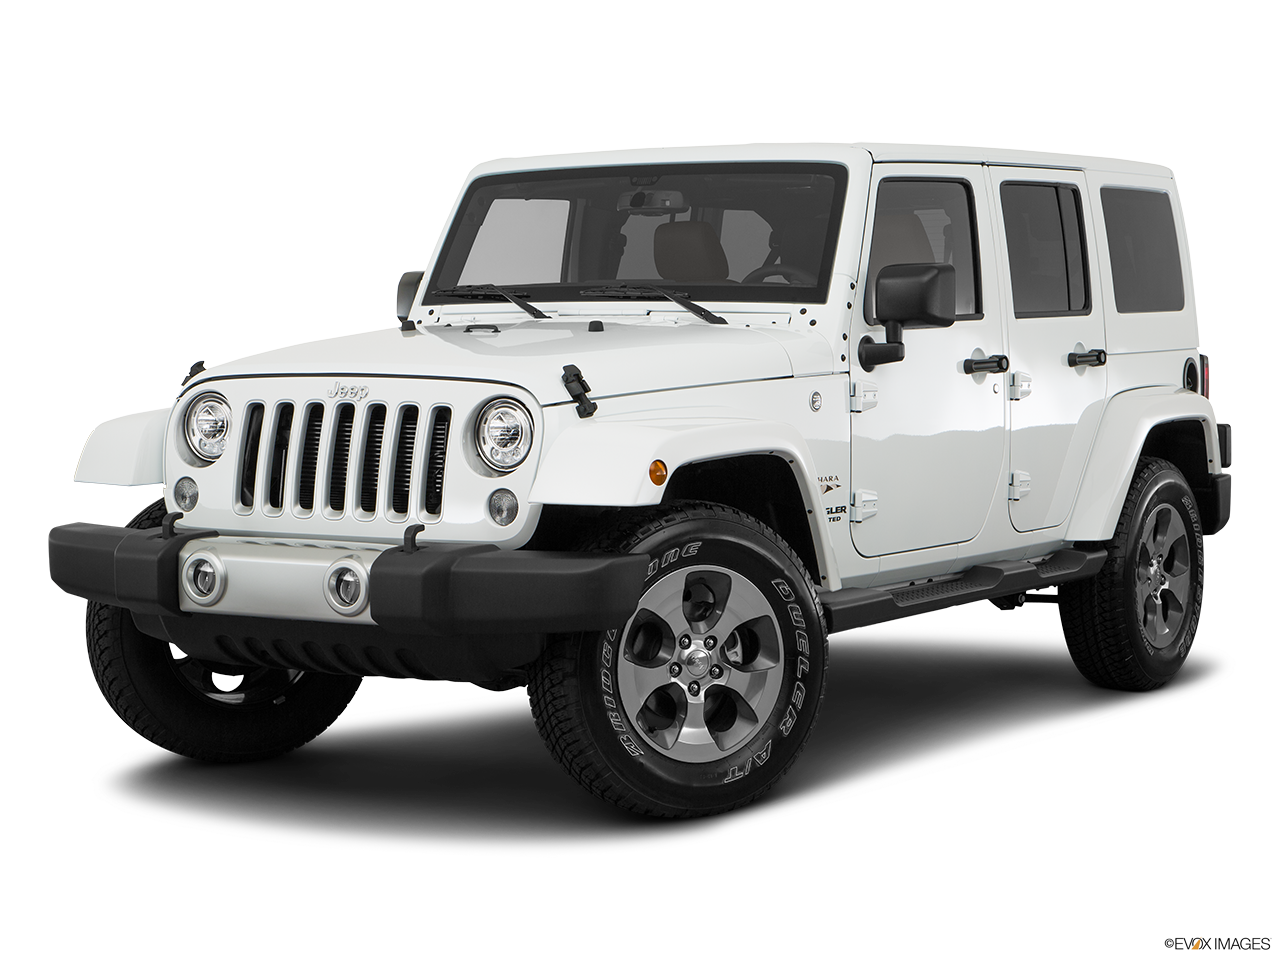 Test Drive A 2017 Jeep Wrangler Unlimited at Landmark Chrysler Dodge Jeep RAM of Morrow near Atlanta